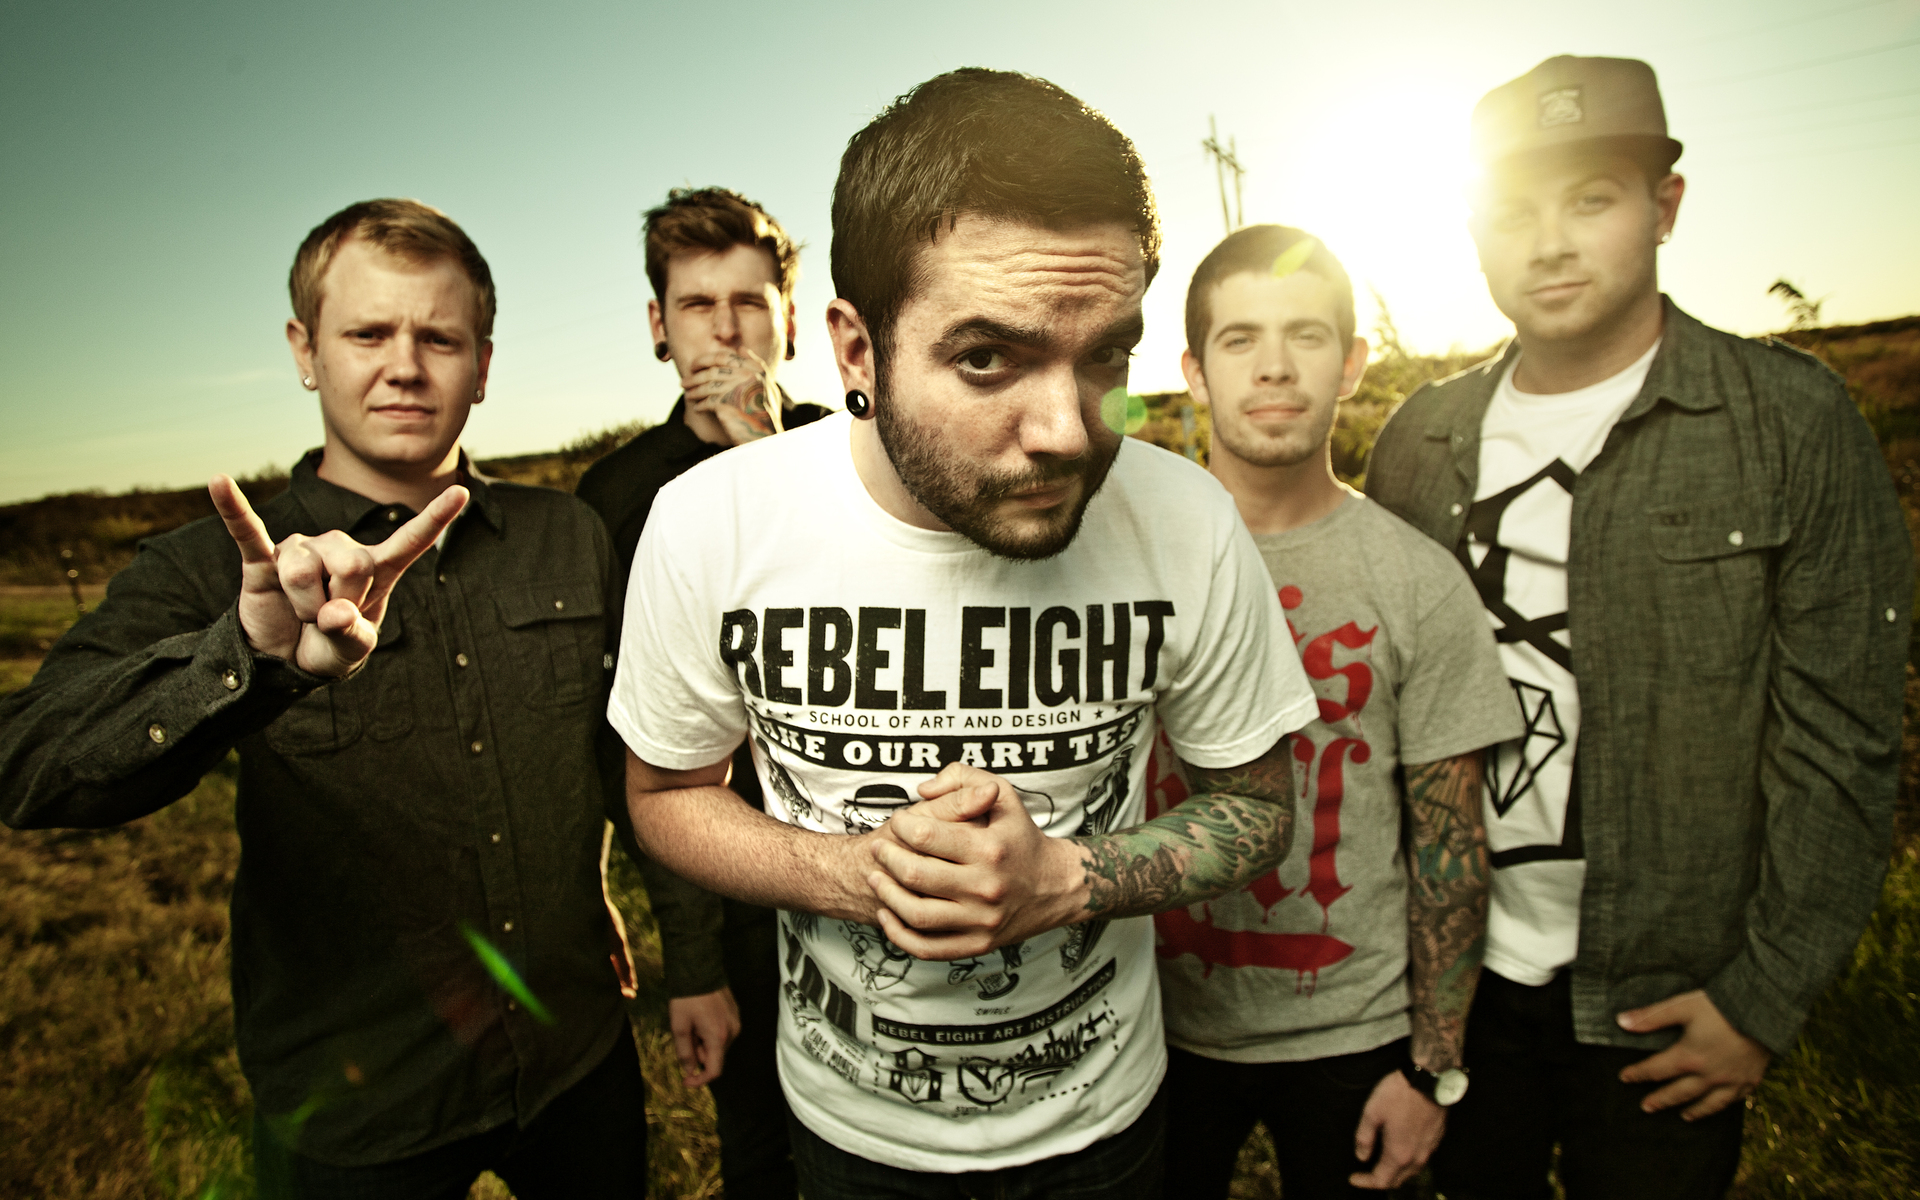 a day to remember, музыка, группа, поле